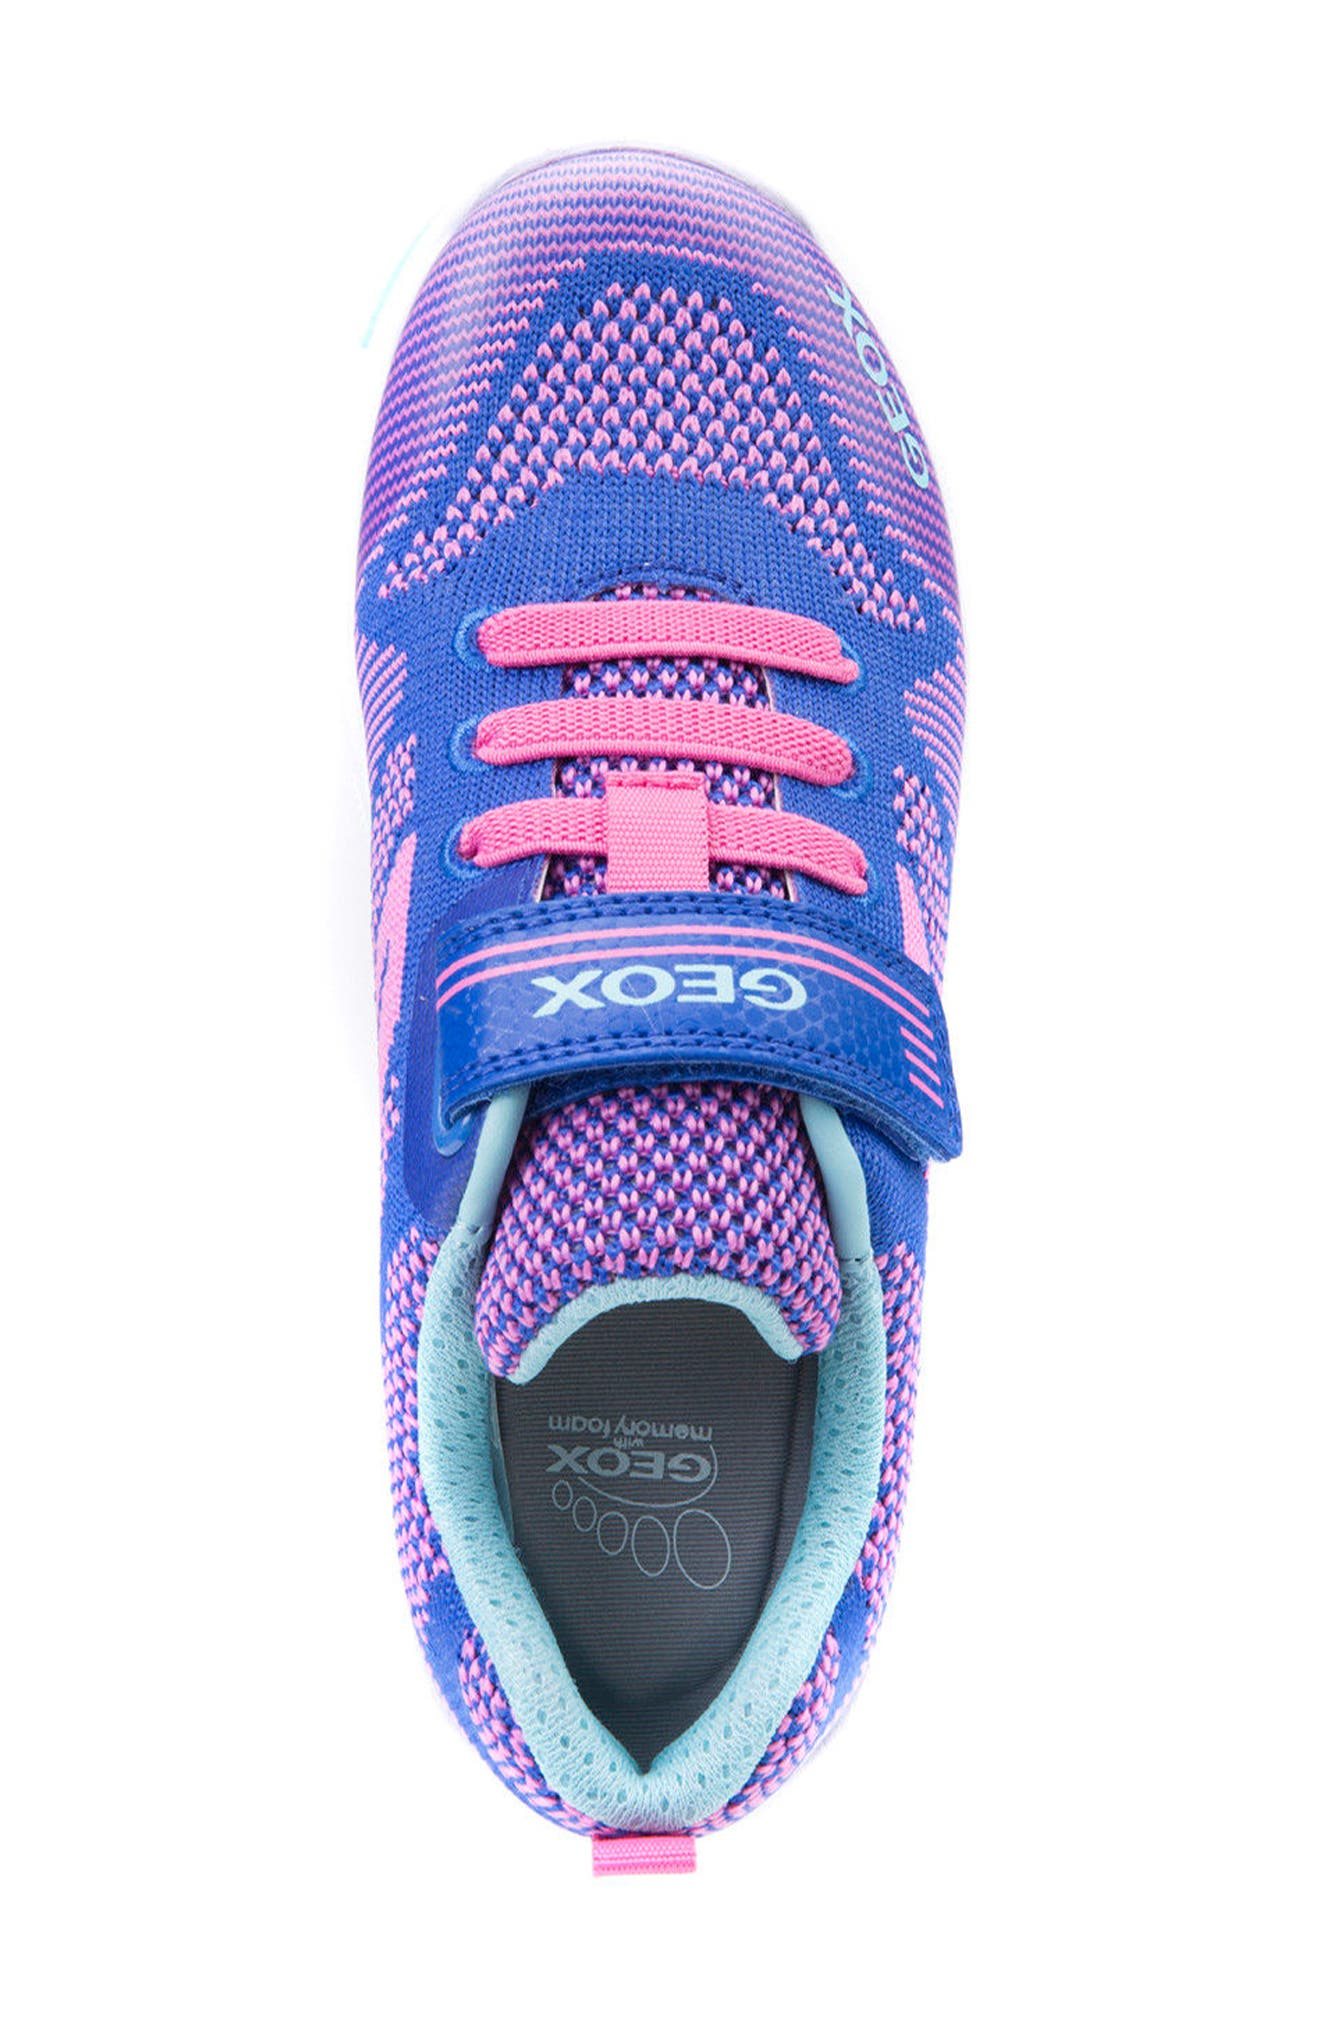 Xunday Low Top Woven Sneaker,                             Alternate thumbnail 10, color,